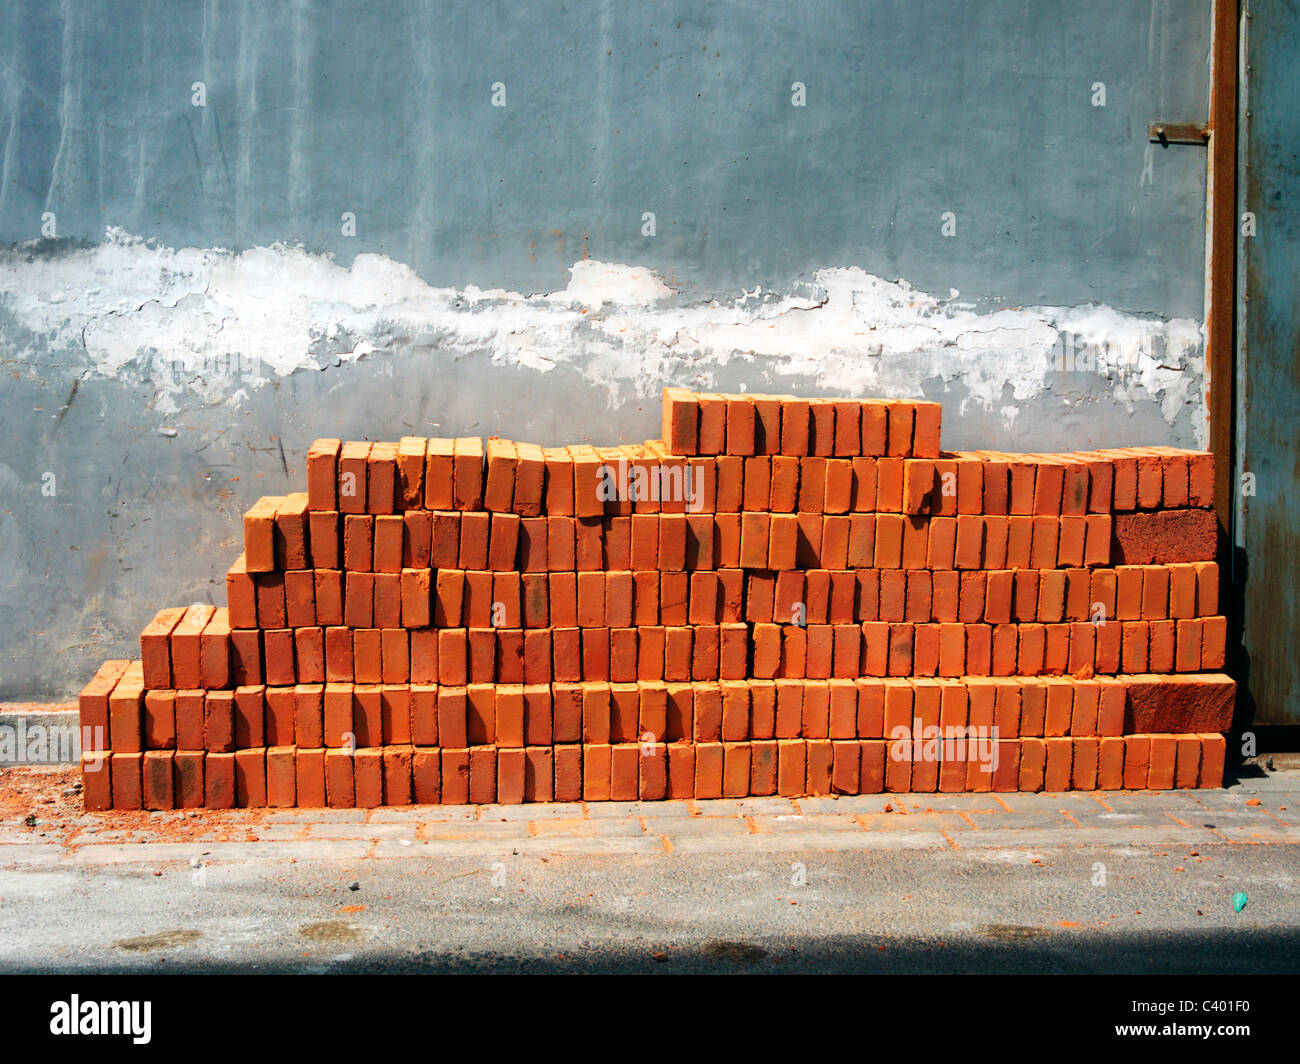 Bricks lined up against a wall in a Chinese Hutong - Stock Image